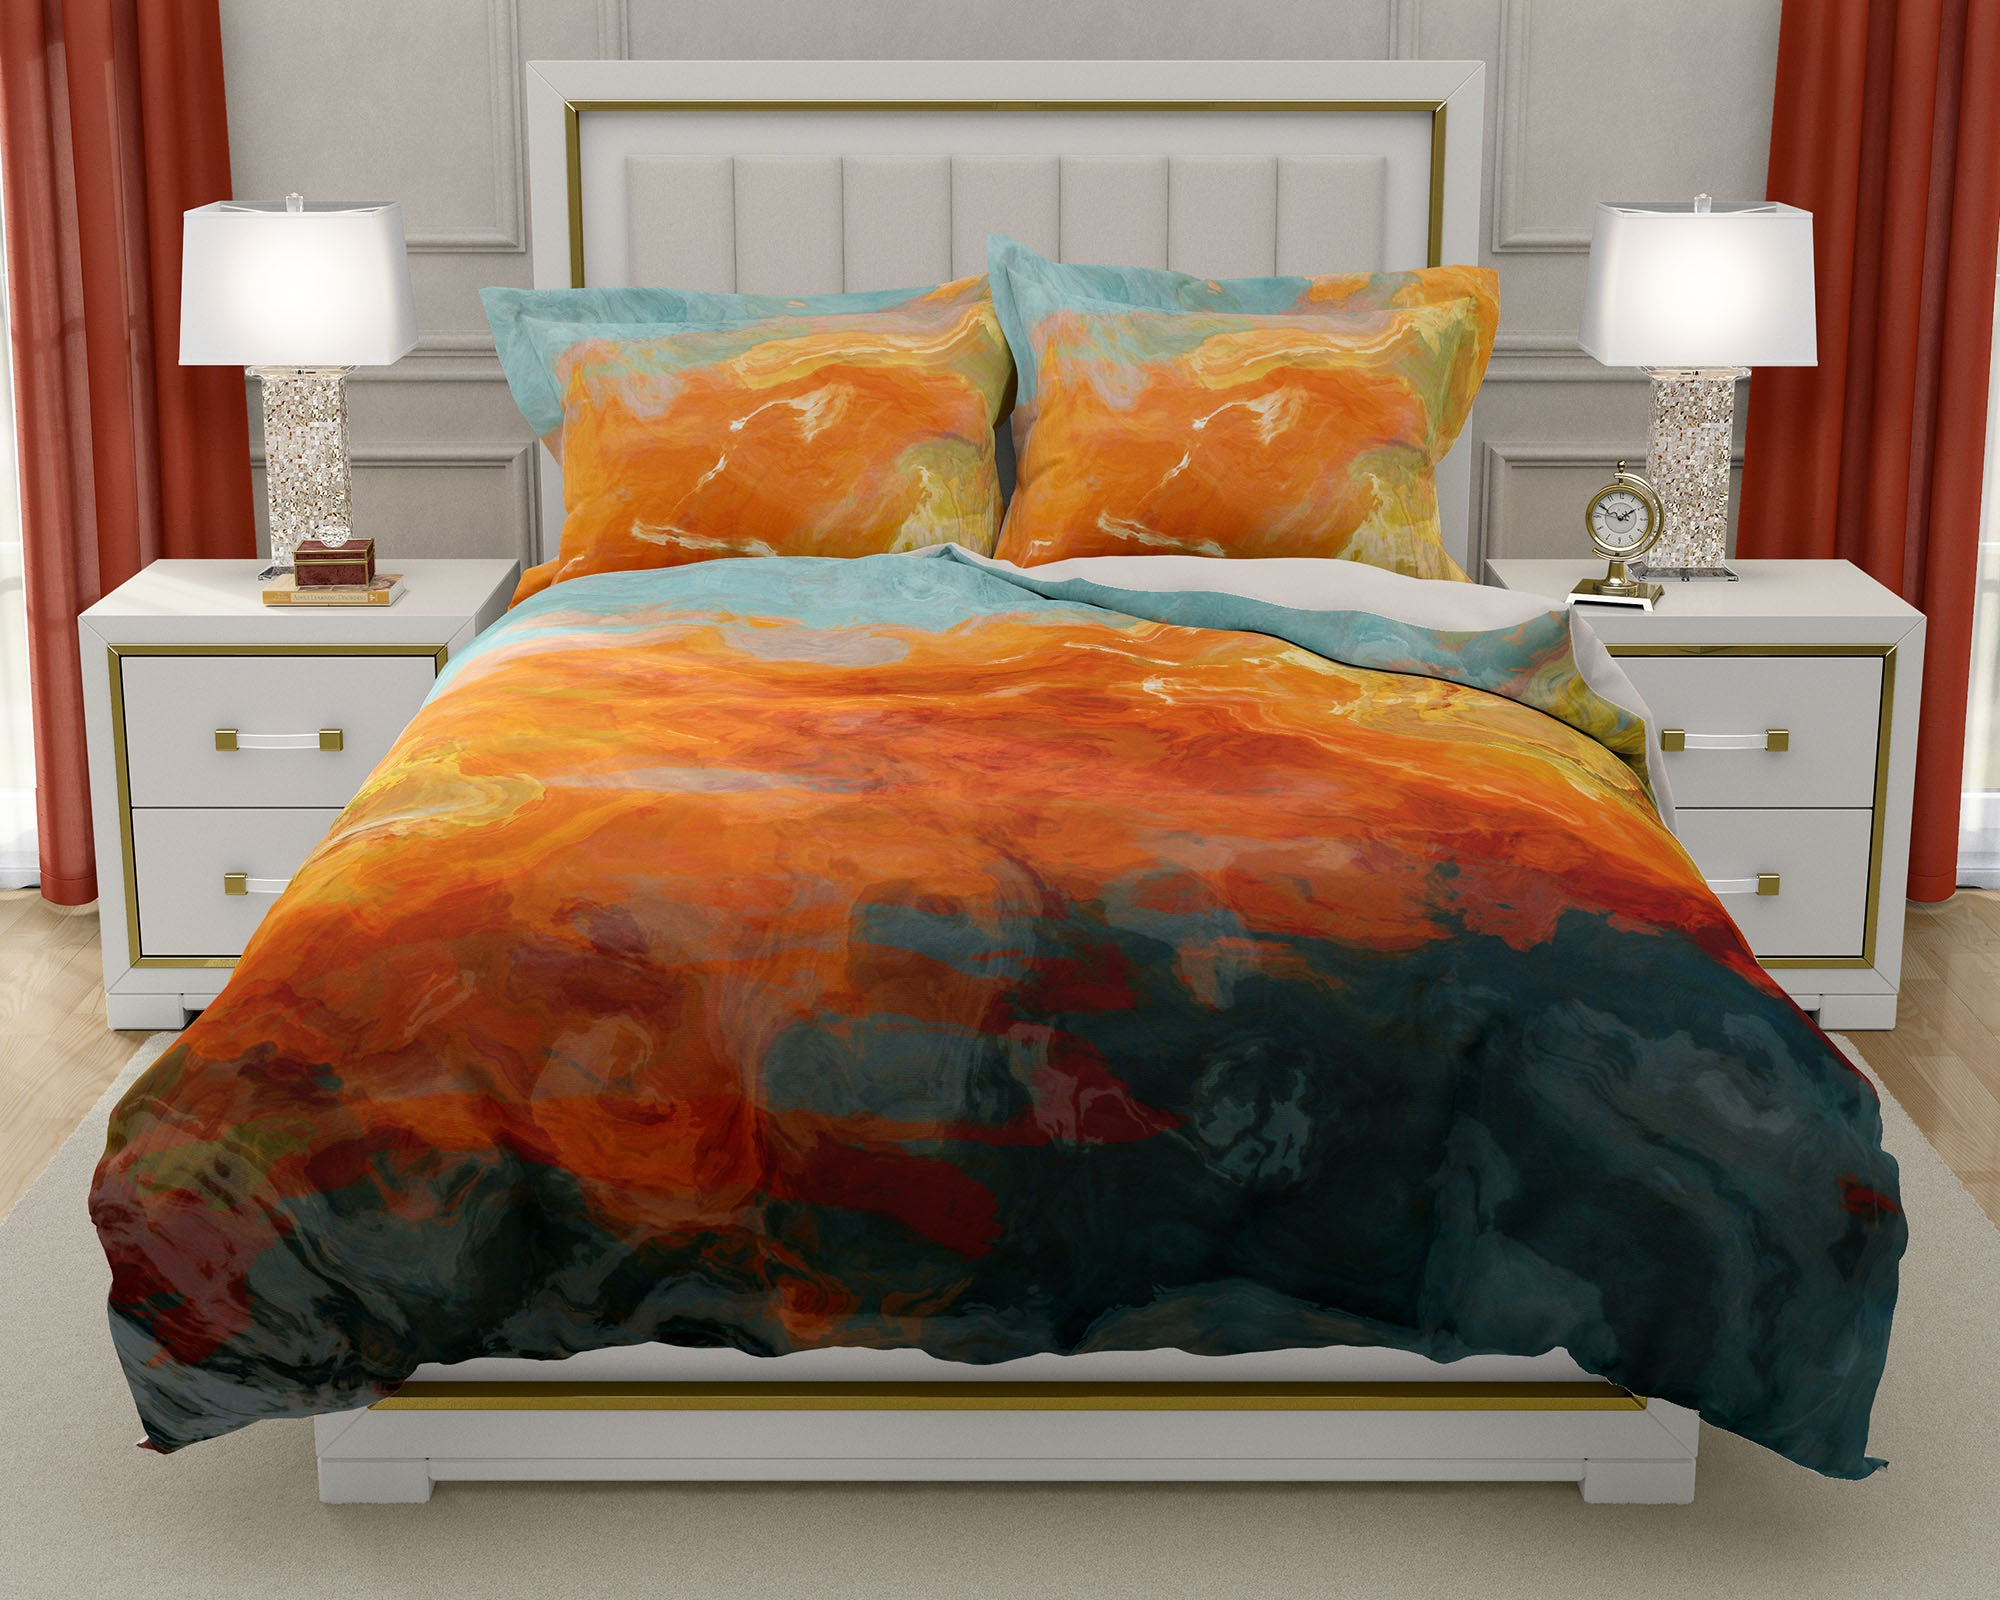 Duvet Cover With Abstract Art King Or Queen In Orange Yellow Teal Abstract Art Home